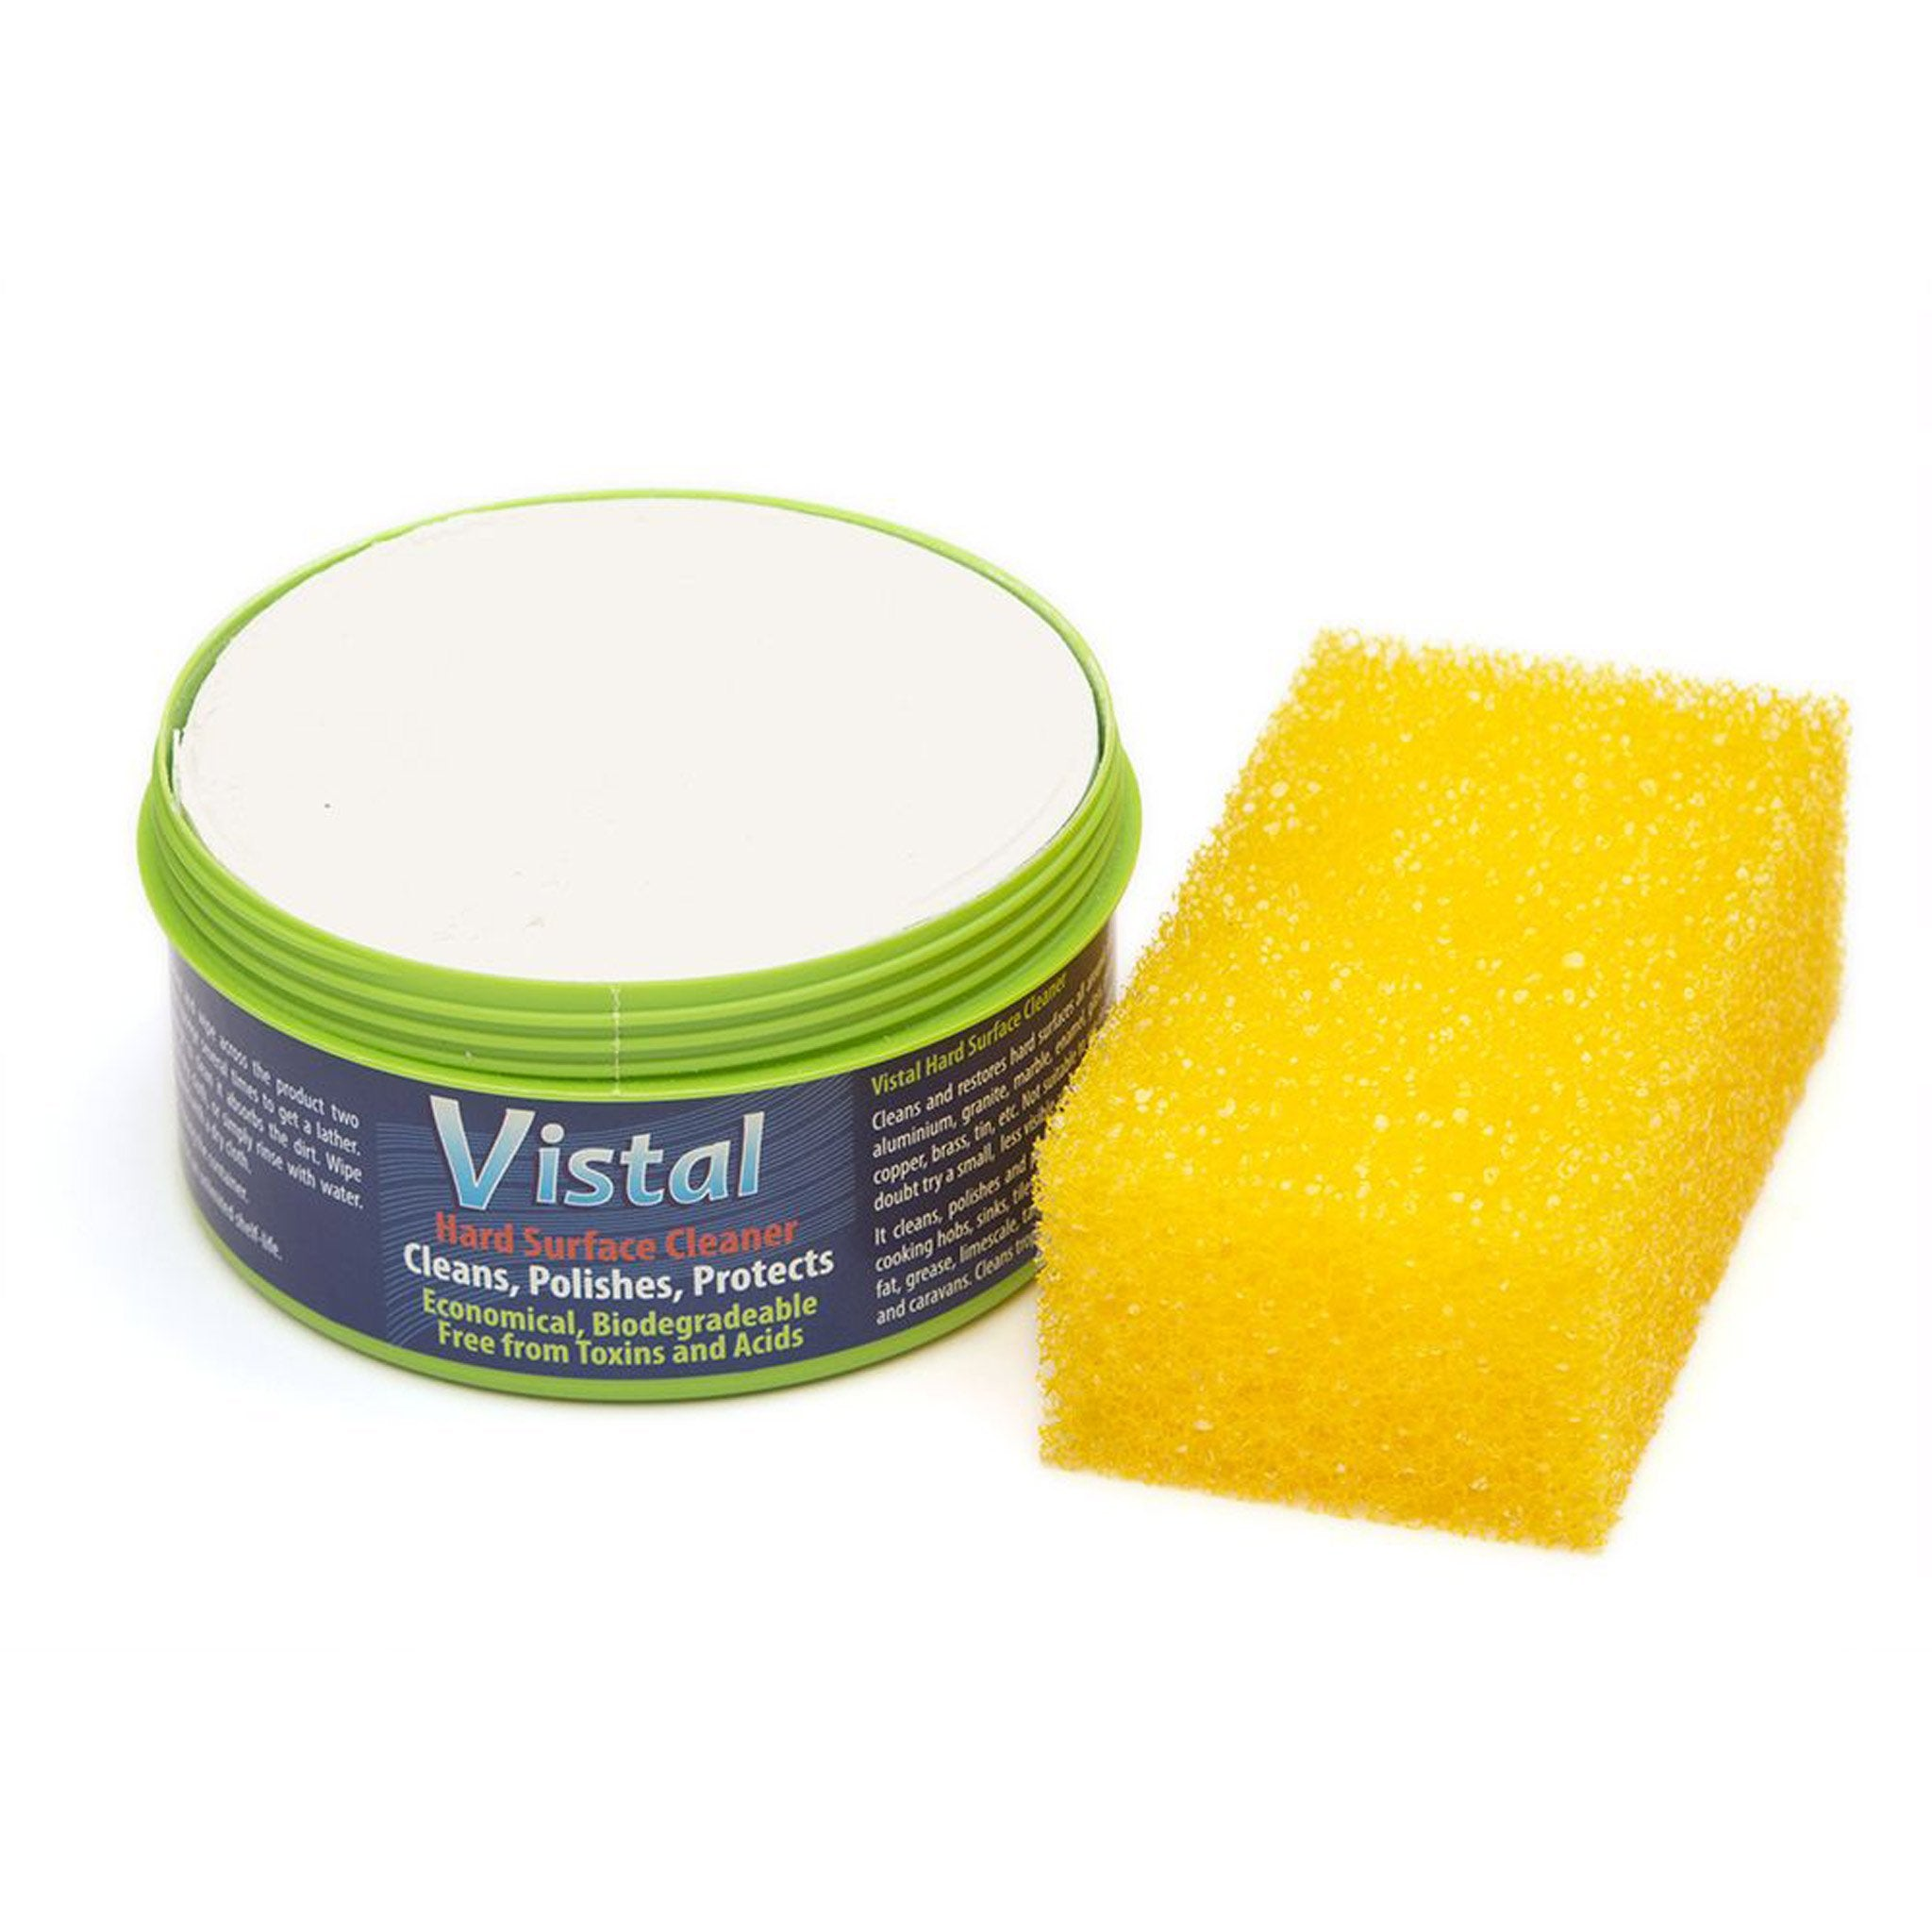 Vistal Multi Surface Cleaner - Arthur Beale